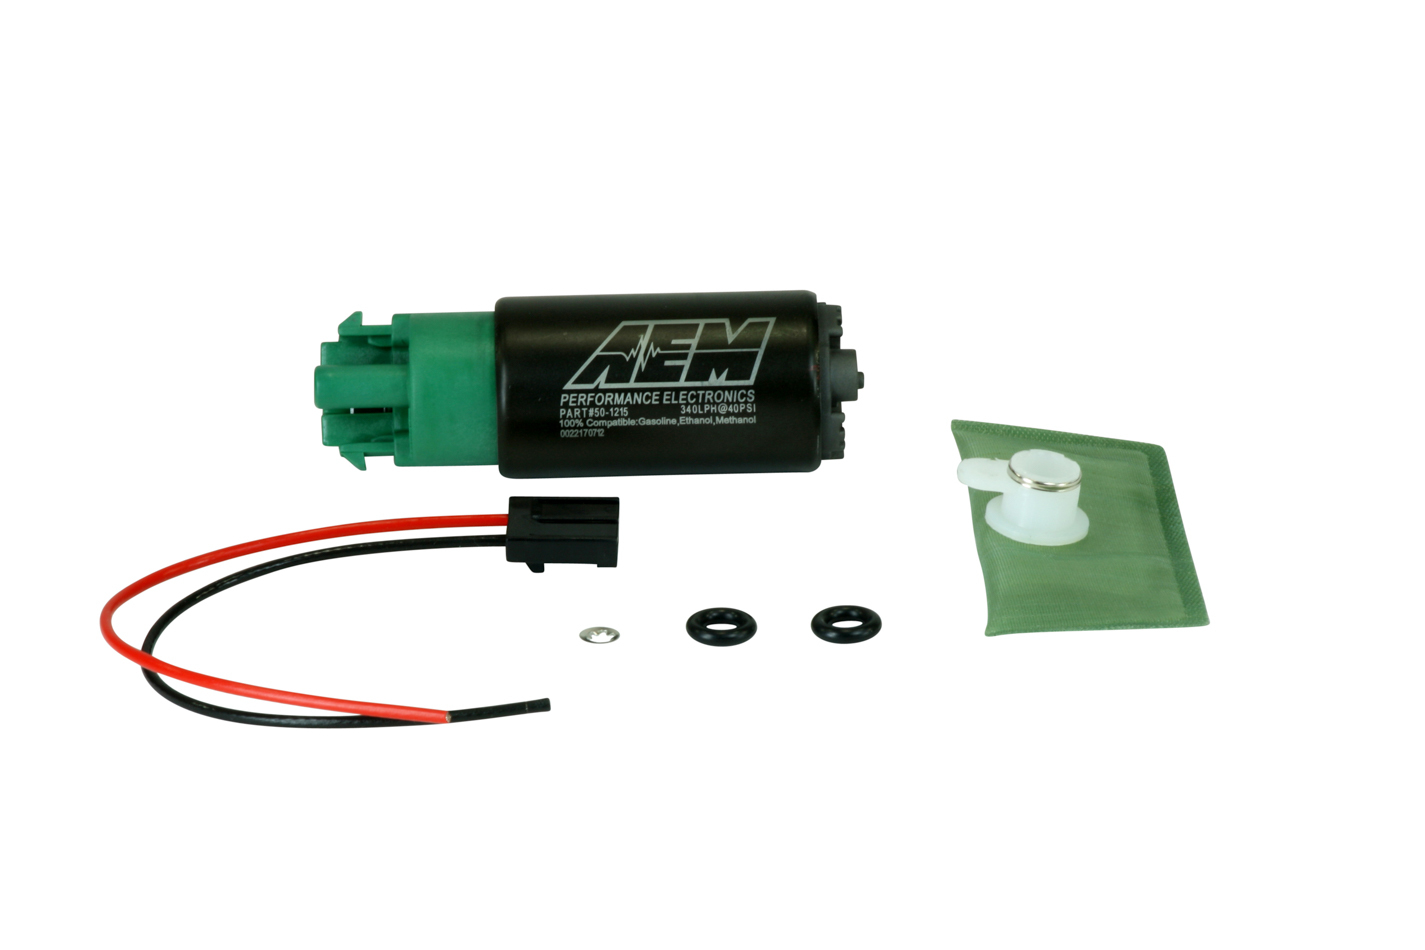 AEM 50-1215 Fuel Pump, High Flow, Electric, In-Tank, 340 lph at 43 psi, 11 mm Hose Barb Inlet, 8 mm Hose Barb Outlet, Install Kit, E85, Kit